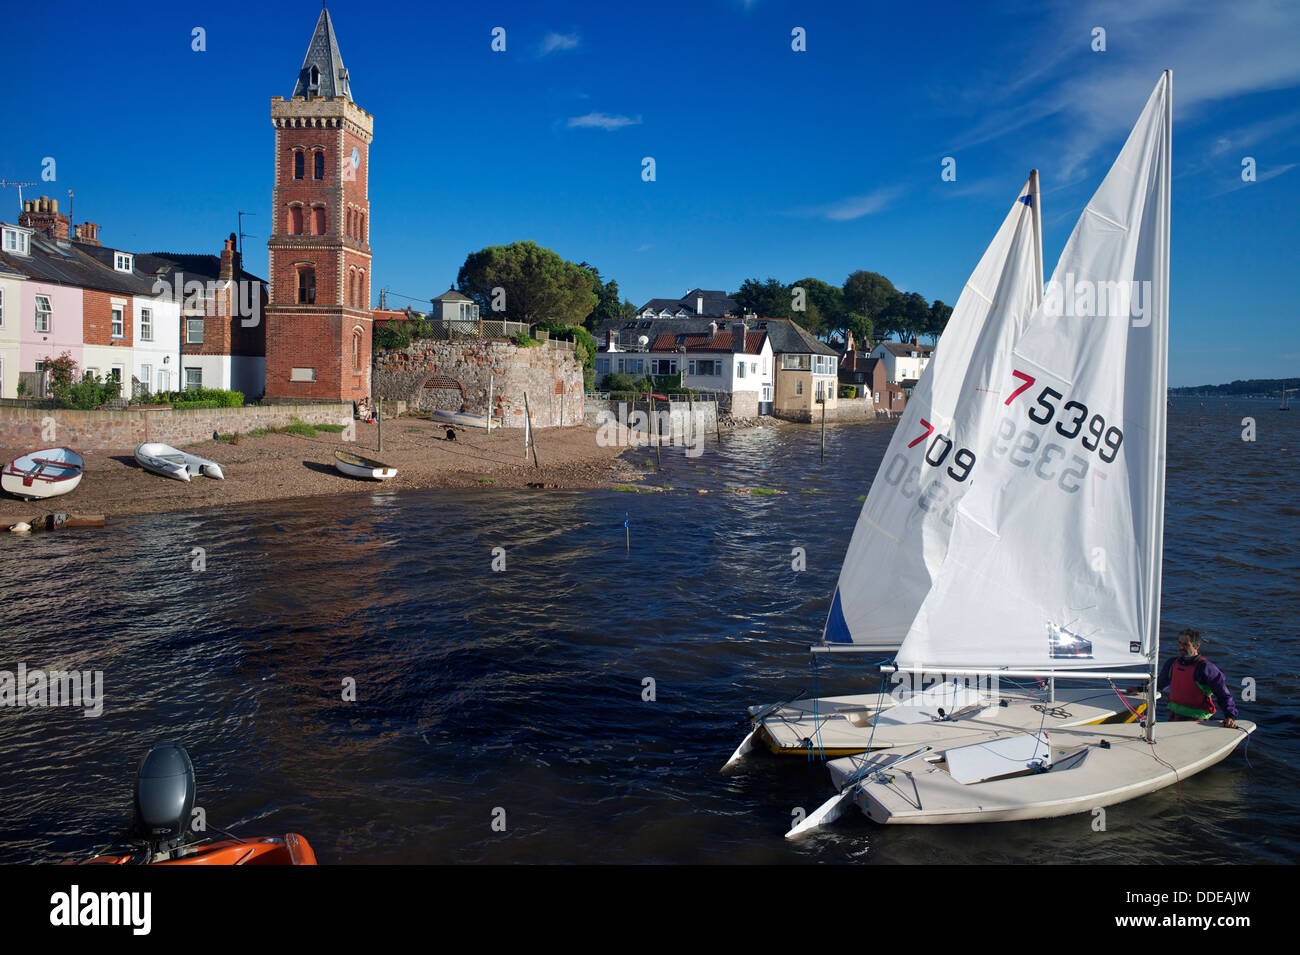 Sailing dinghies and Peters Tower, Lympstone Harbour, Exe Estuary, Devon, UK - Stock Image